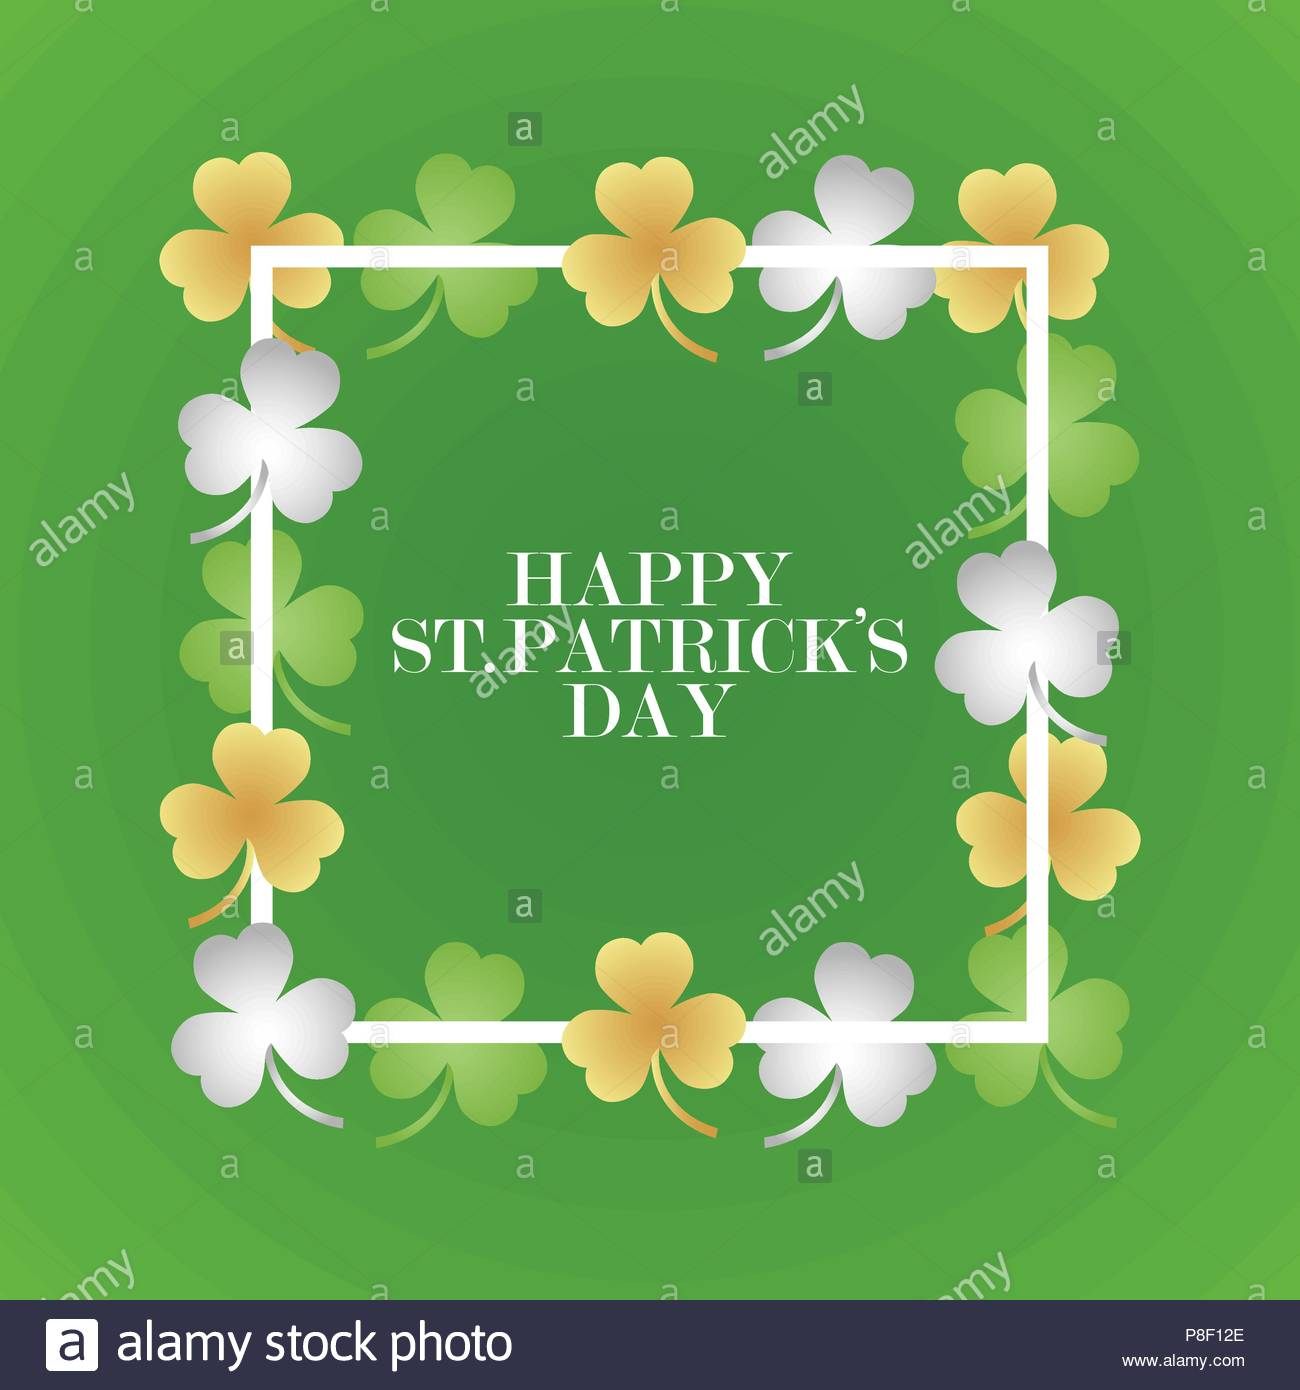 Invitation or greeting card for the day of St. Patrick. Black frame with clover leaves. Vector illustration Stock Vector